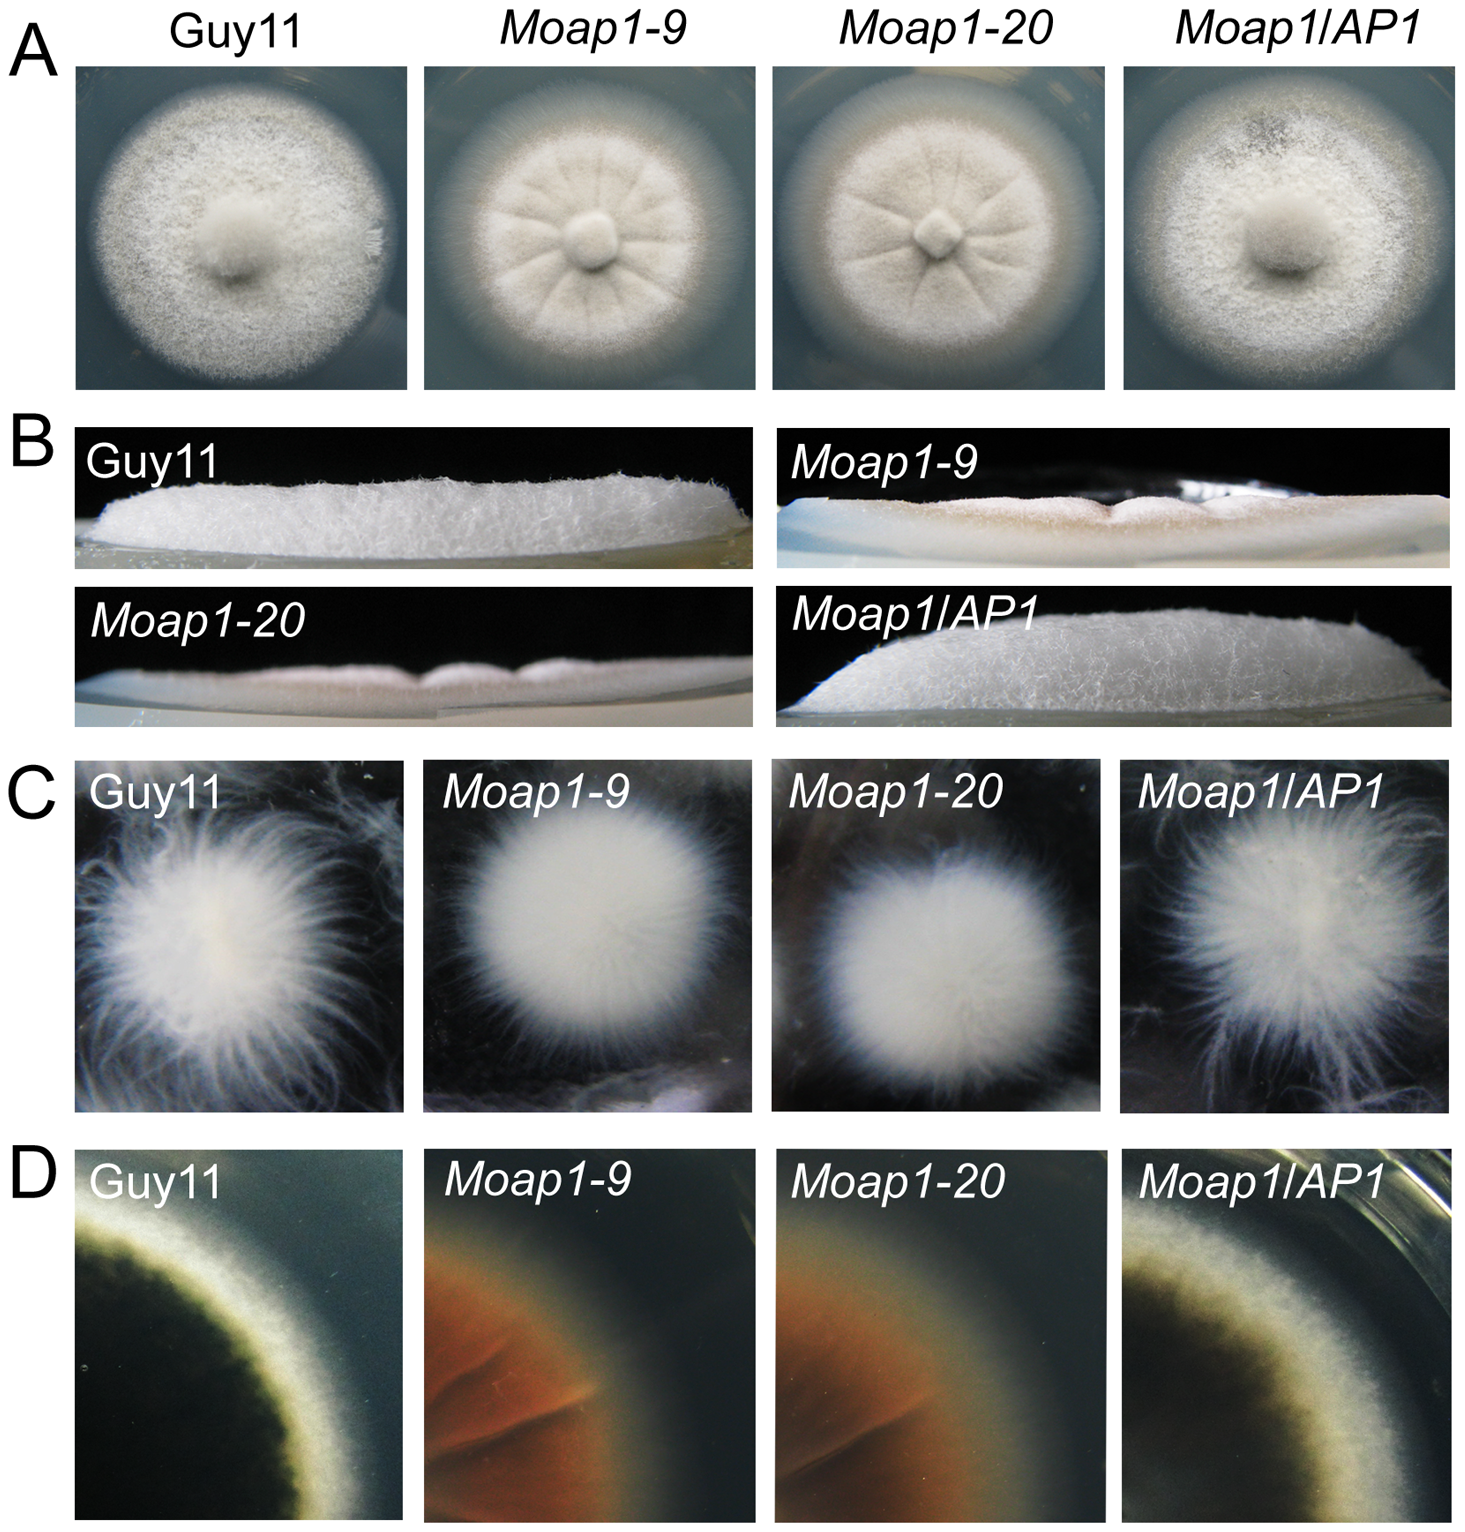 The effect of MoAP1 on mycelia growth.